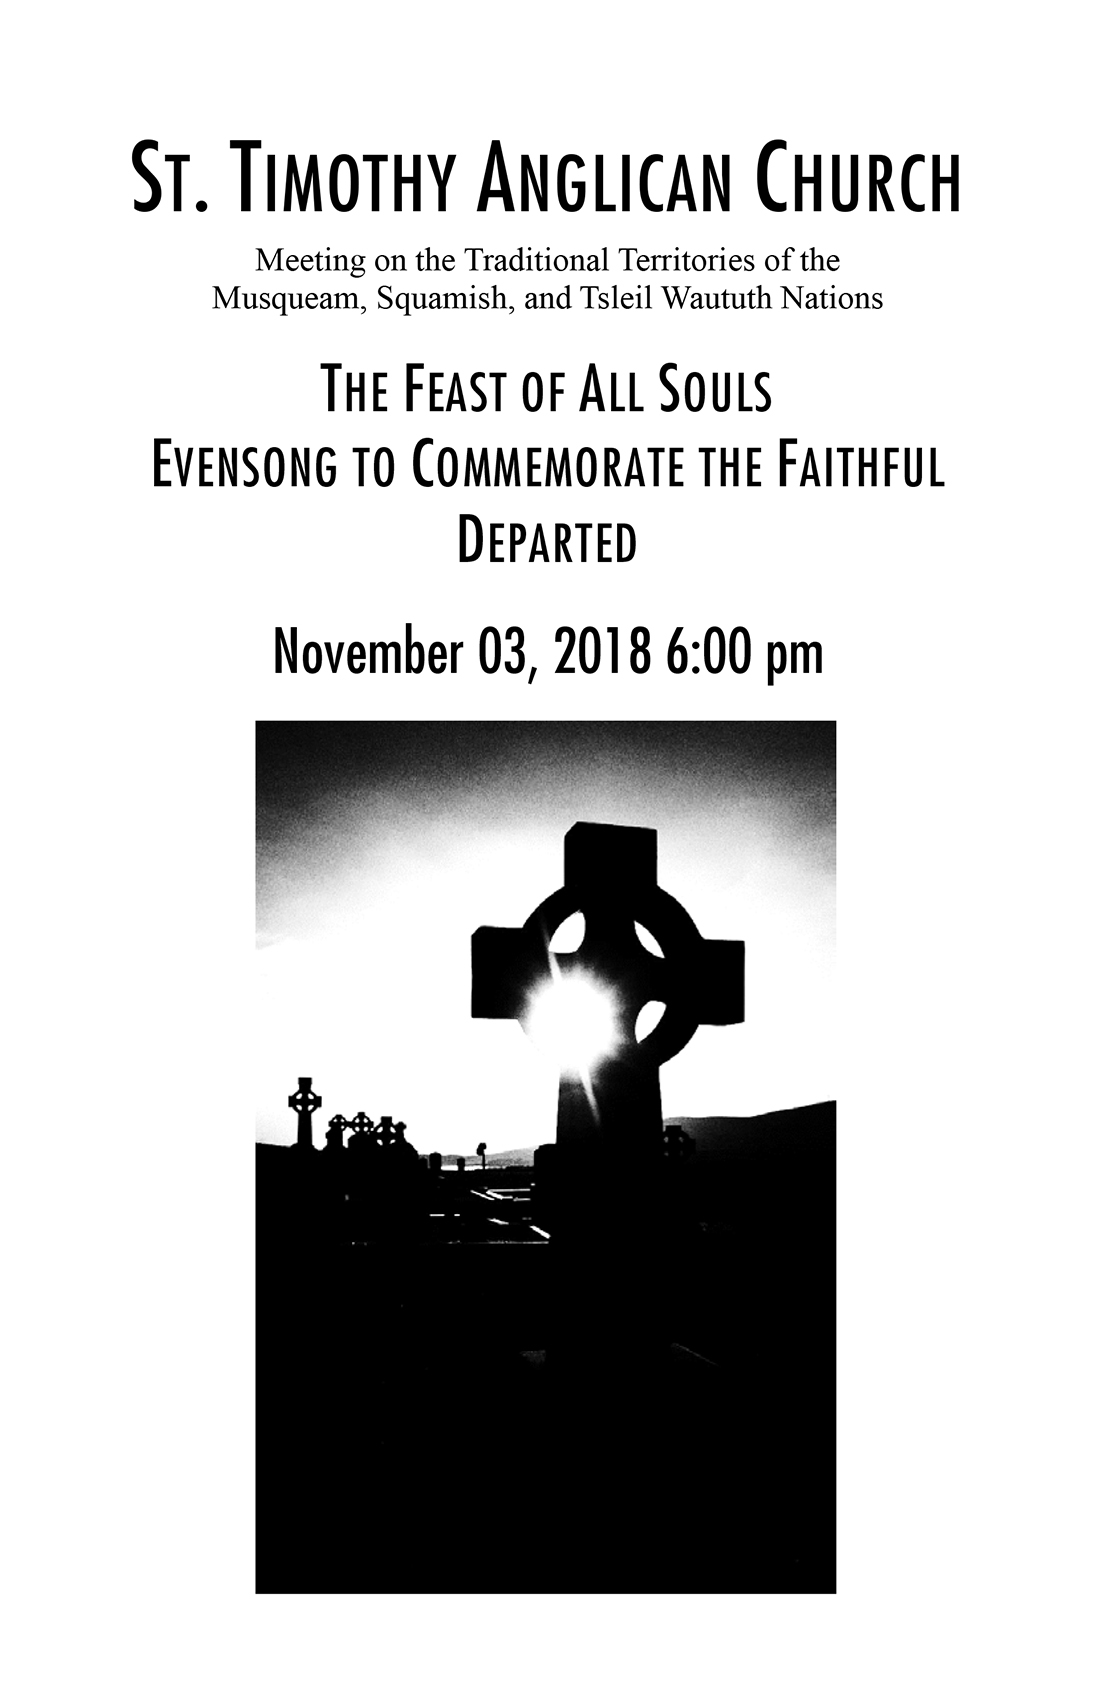 Bulletin: November 3, 2018 (All Souls Evensong)